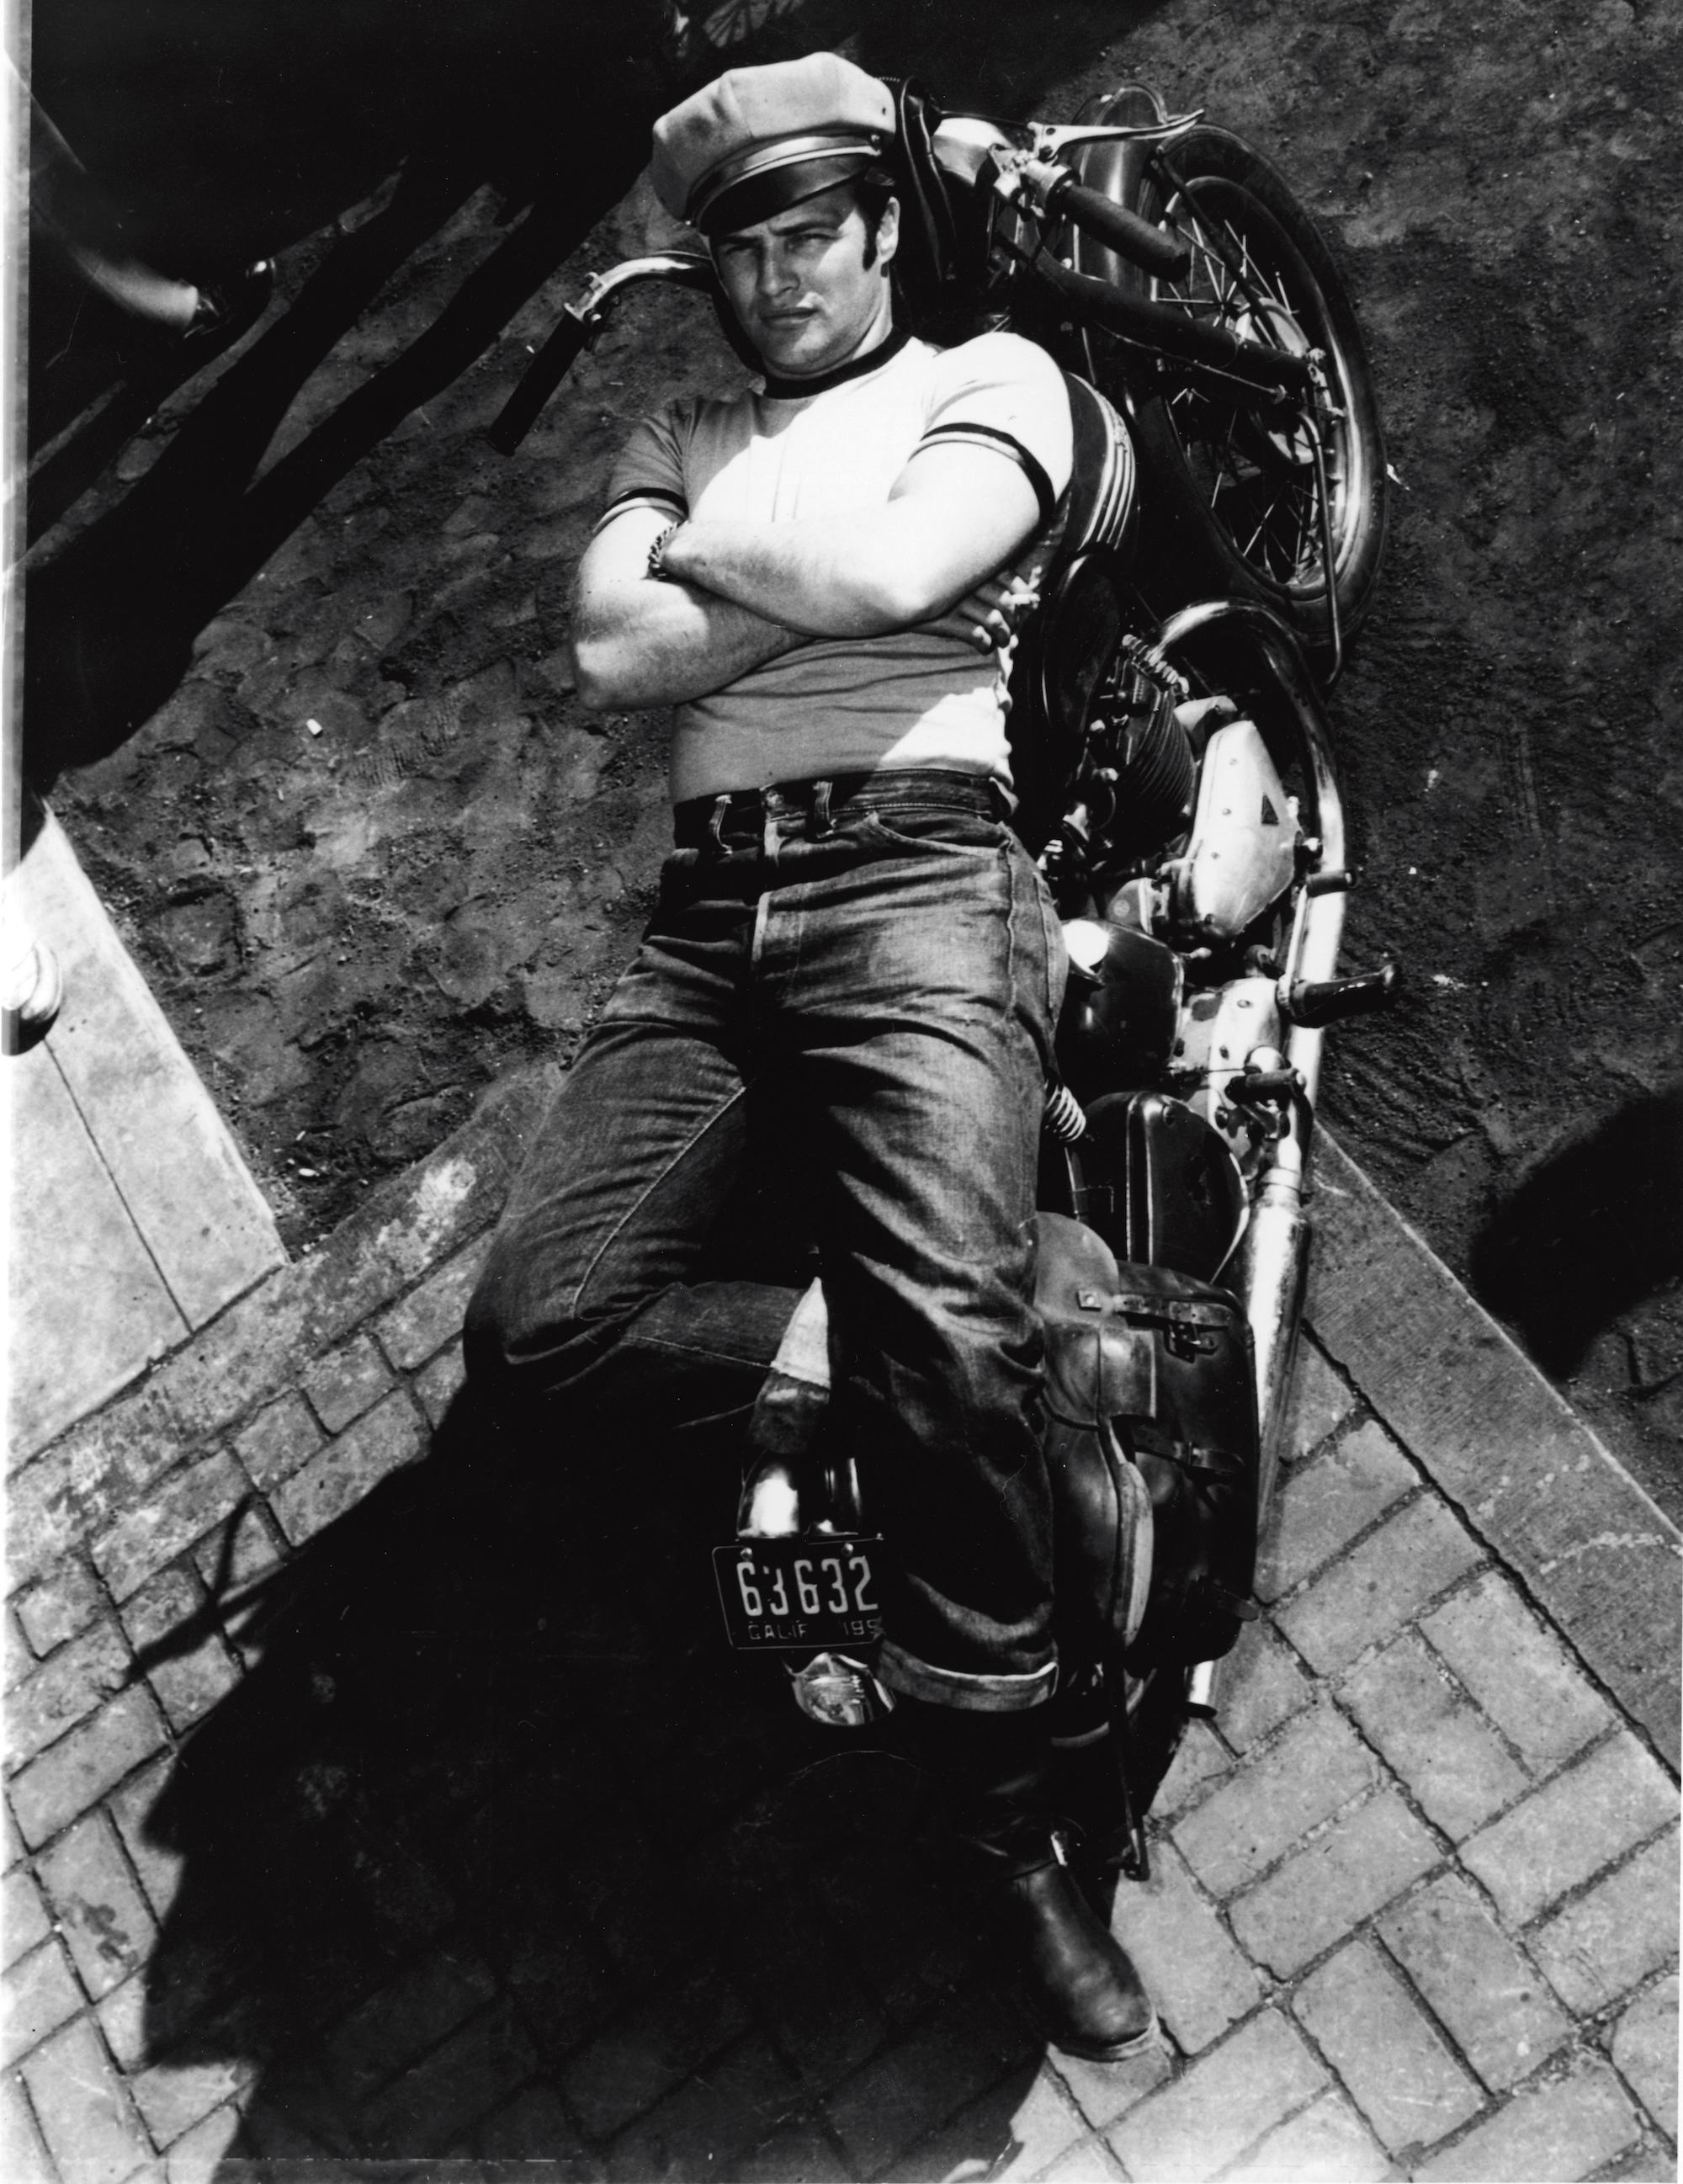 American actor Marlon Brando (1924 - 2004) lies on a motorcycle in a publicity shot for the film 'The Wild One,' directed by Laszlo Benedek, California, 1953. (Photo by Columbia TriStar/Courtesy of Getty Images)